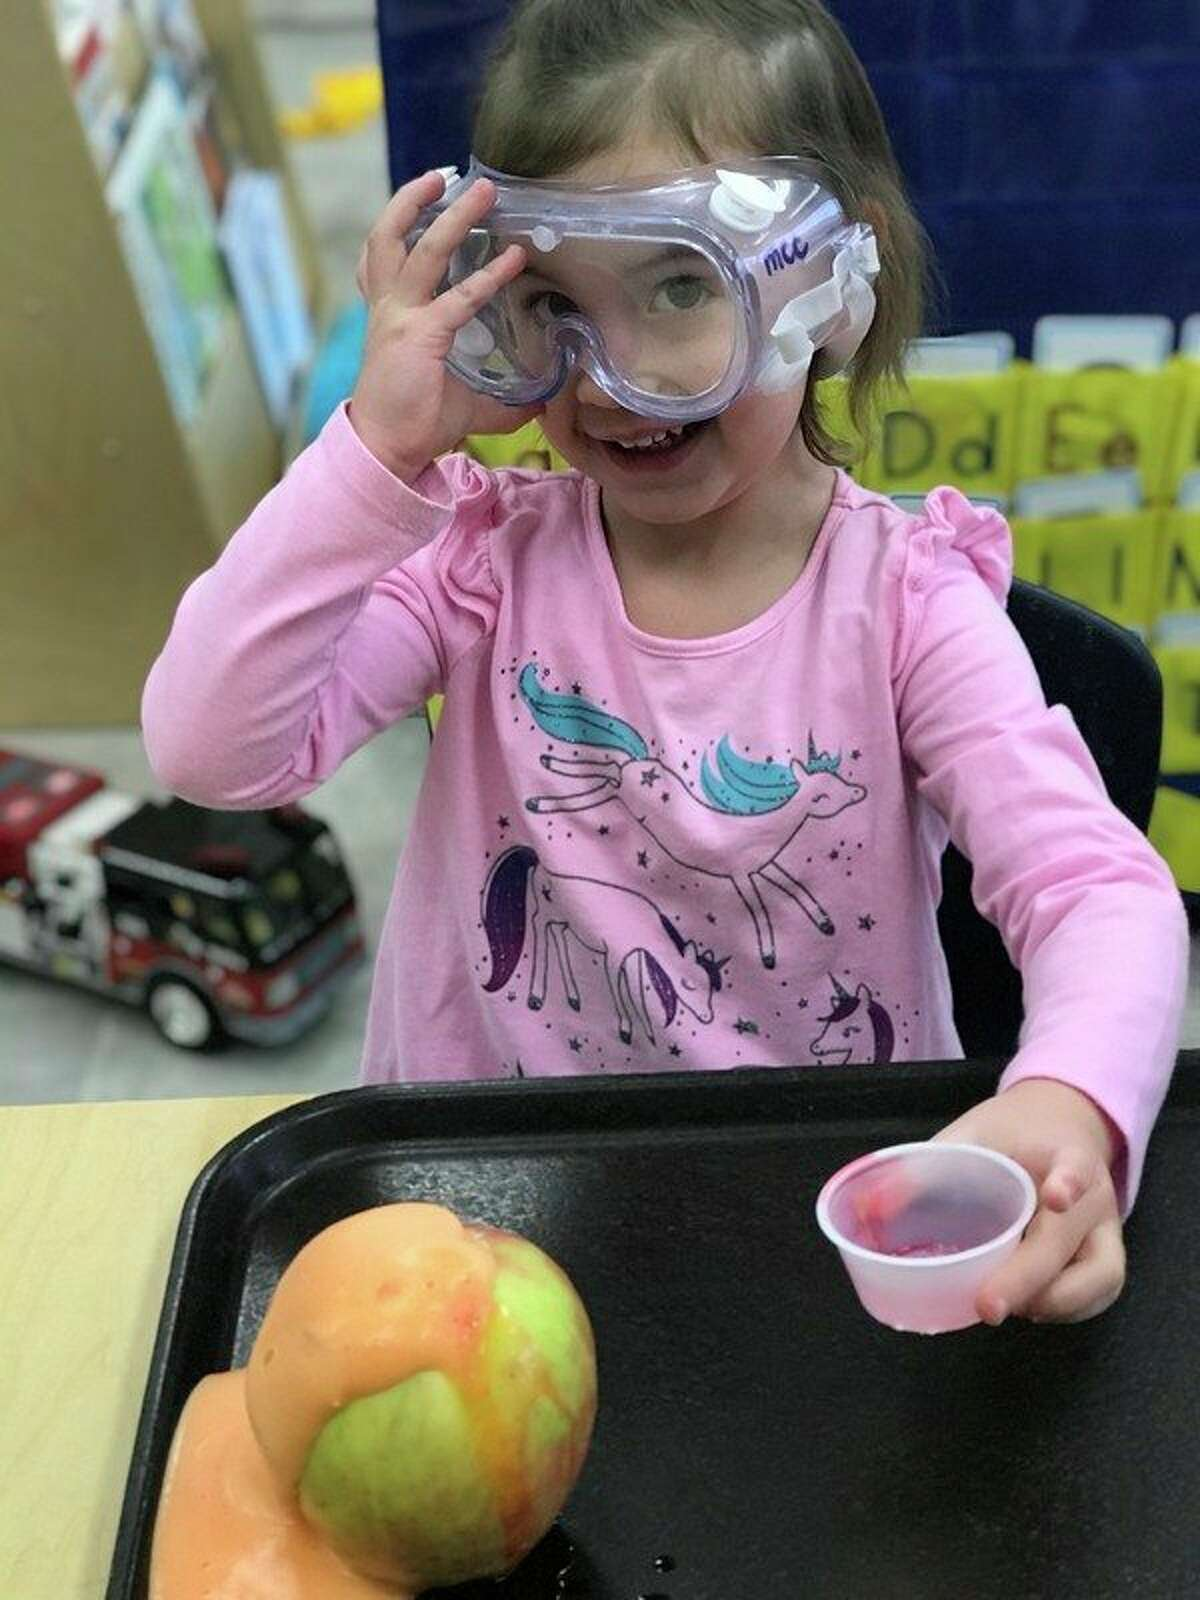 Look what I created seems to be what this smiling young Manistee Catholic Central student is saying about her apple volcano.